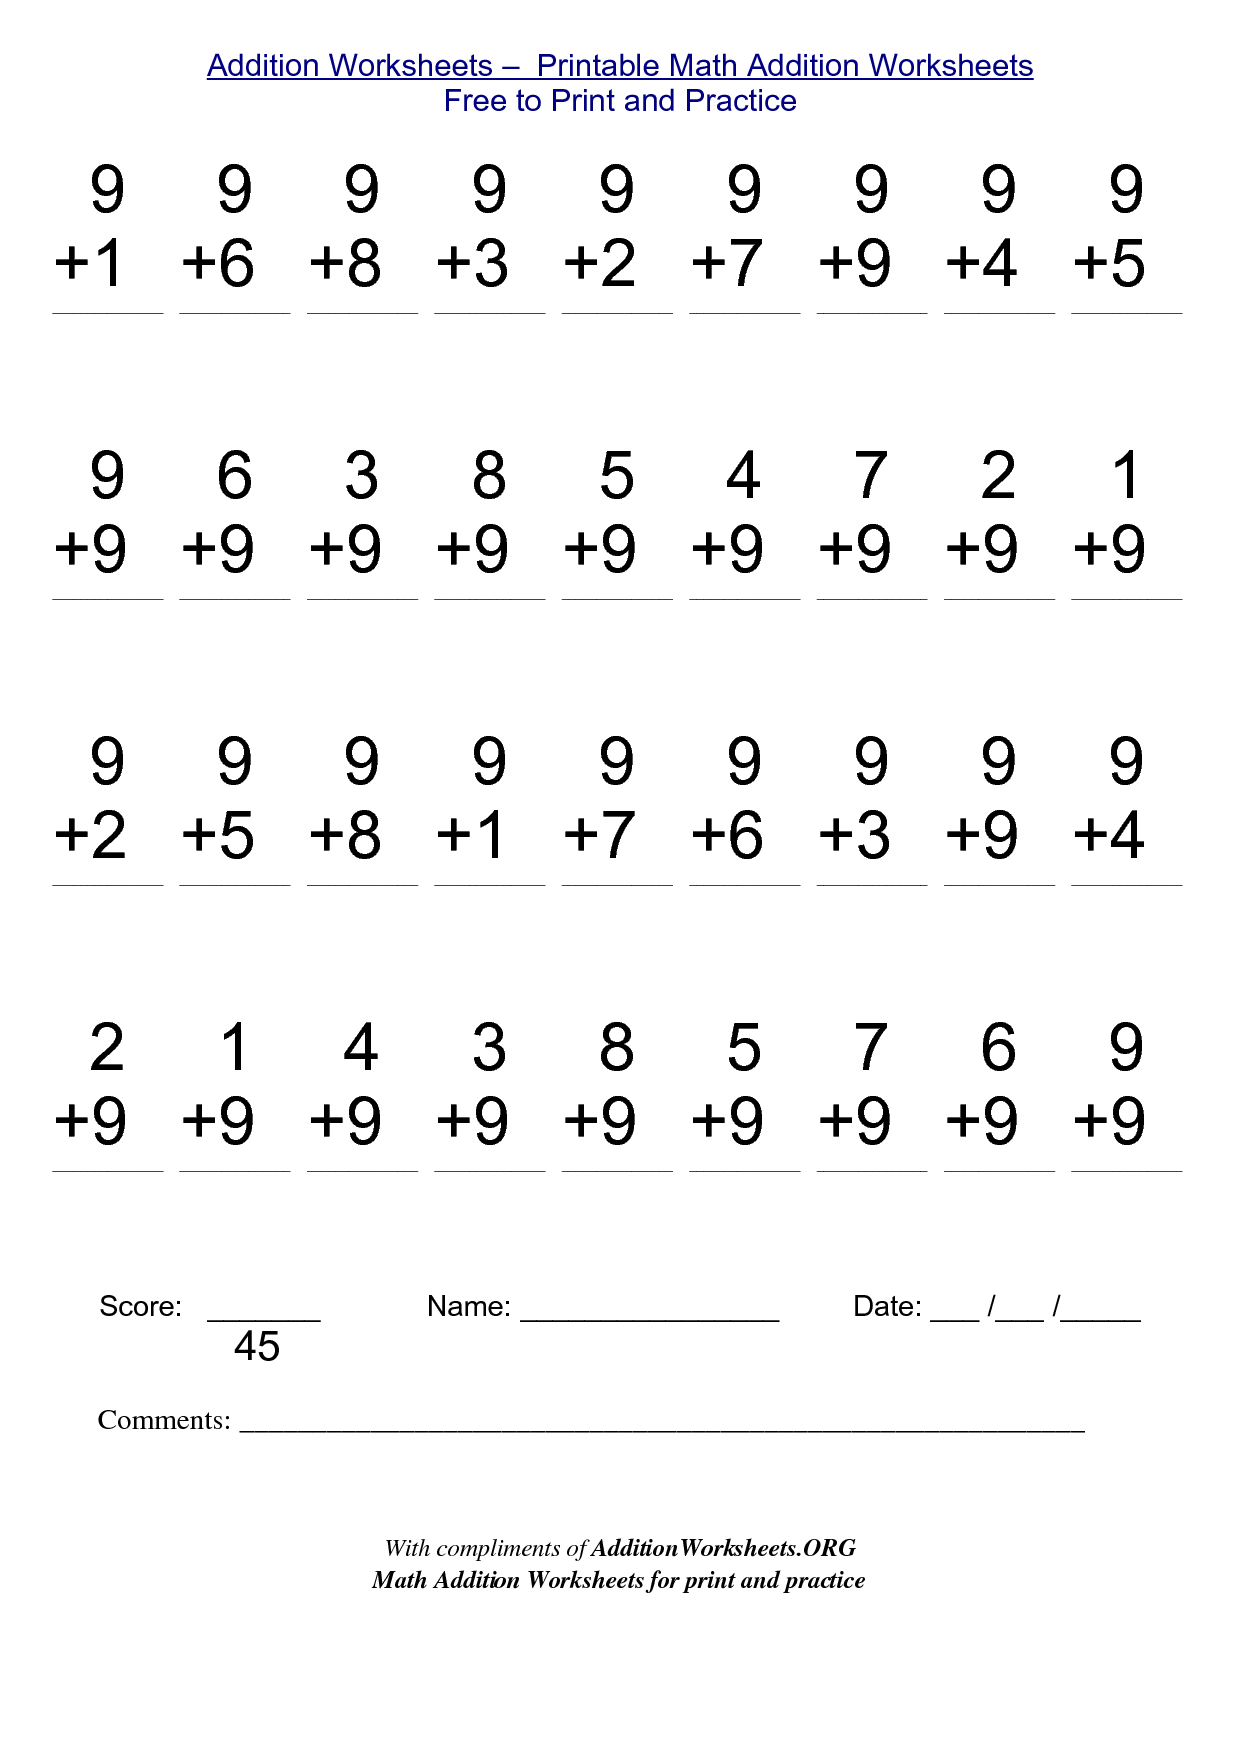 Math Worksheets for Free to Print Alot ME – Print Worksheets